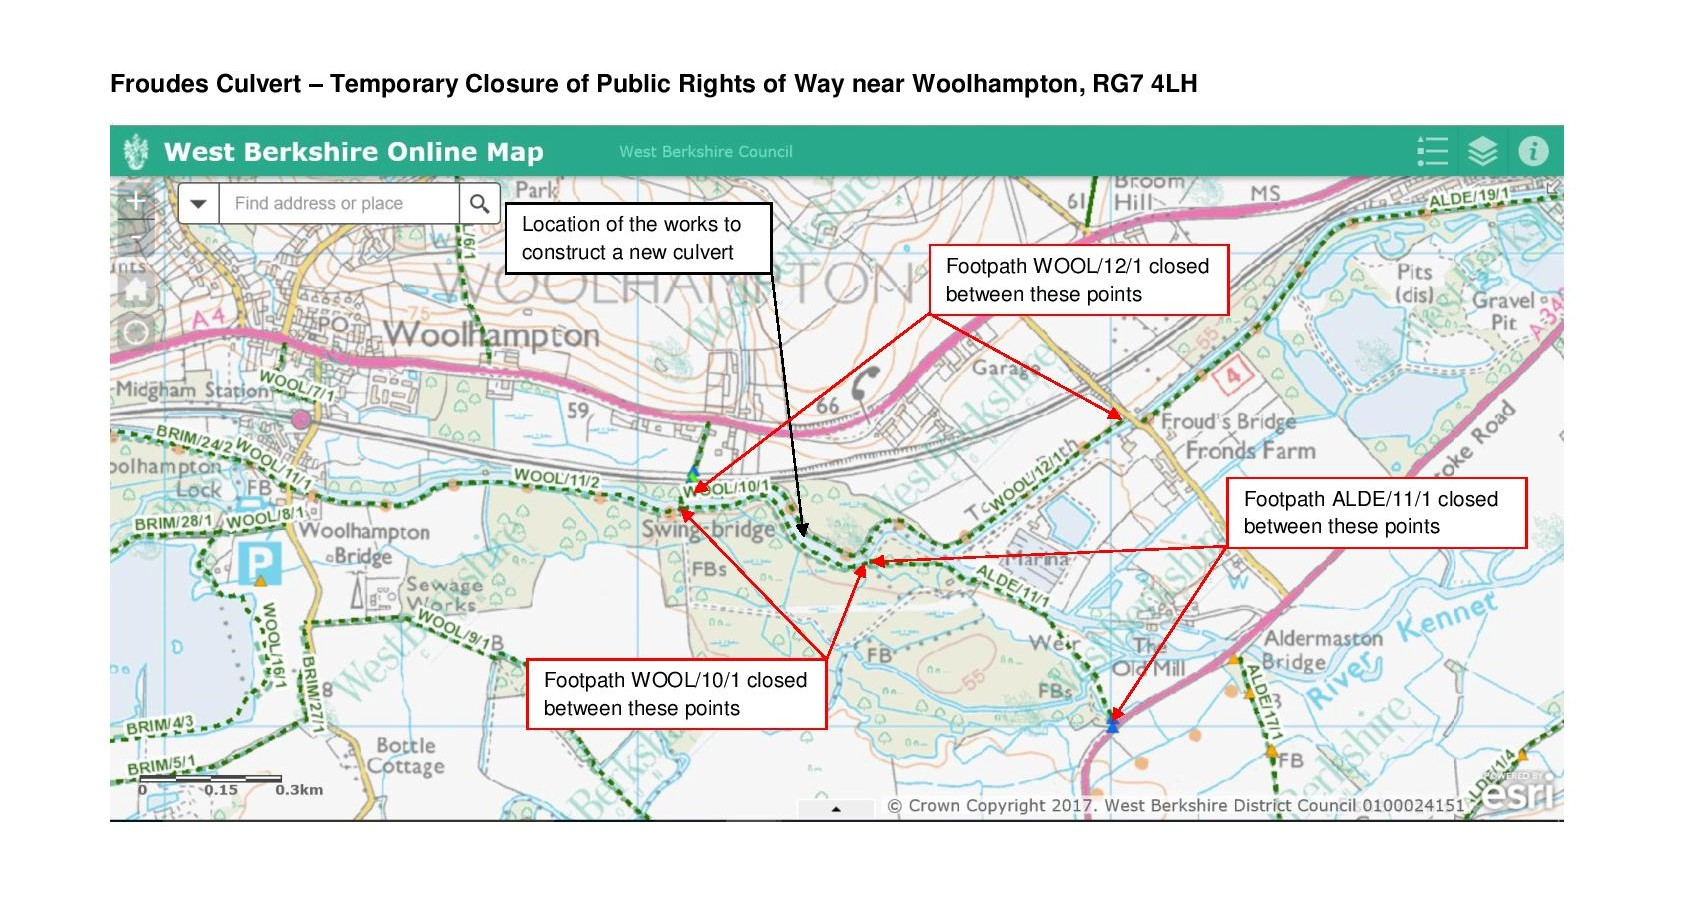 Froudes Culvert Plan Showing Temporary Closure of Public Rights of Way page 001 1